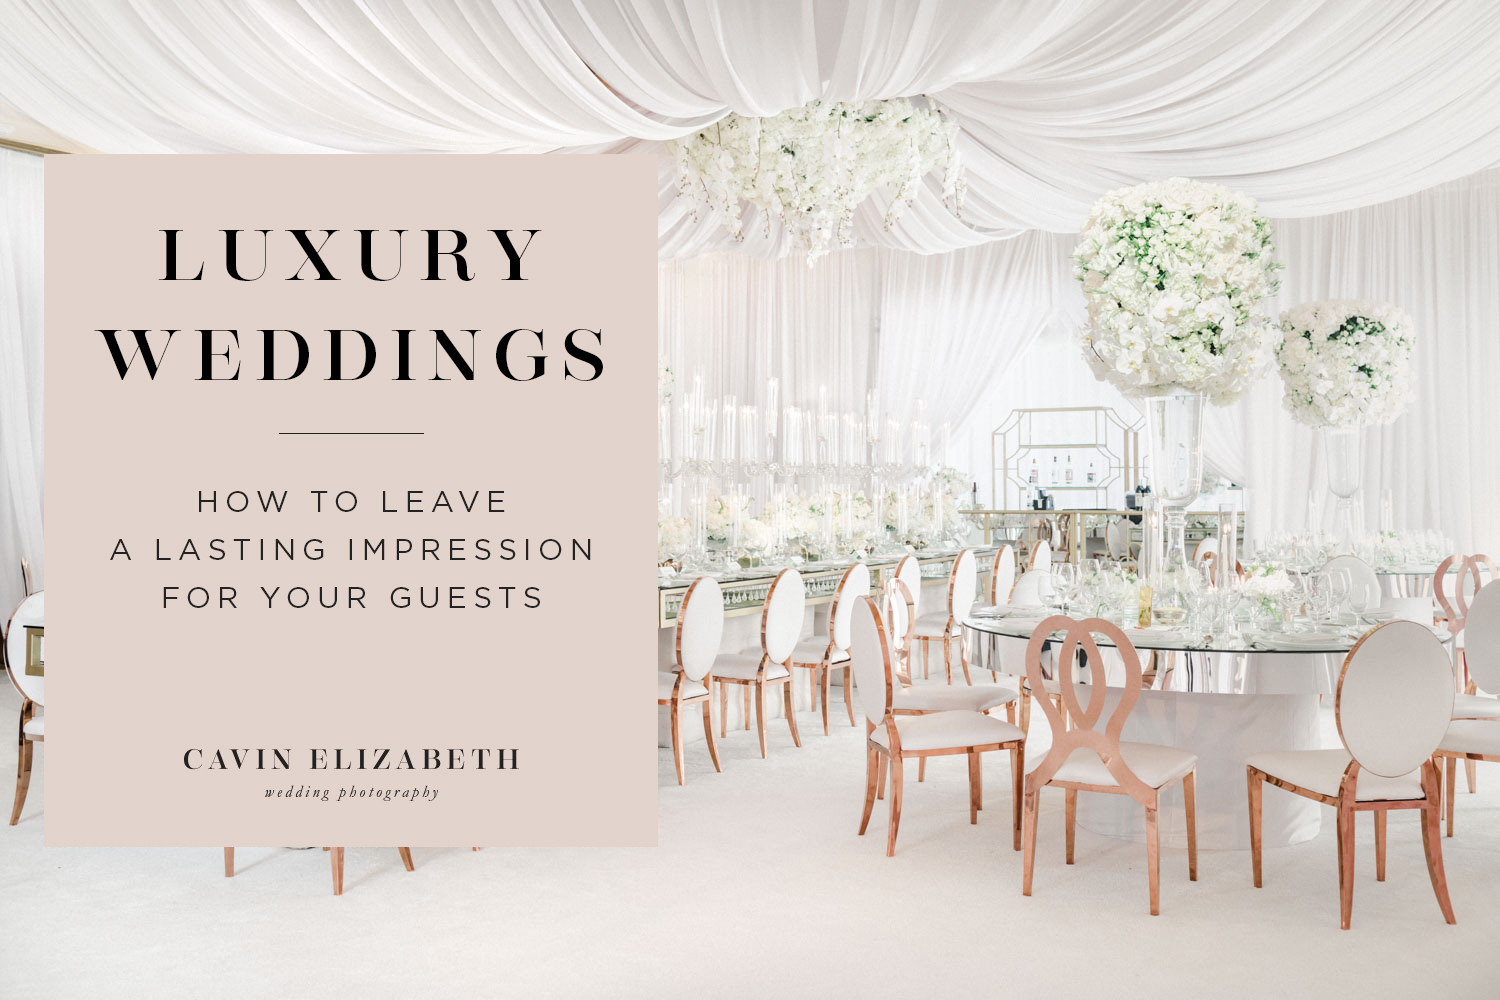 San Diego Luxury Weddings: Leave a Lasting Impression for Guests